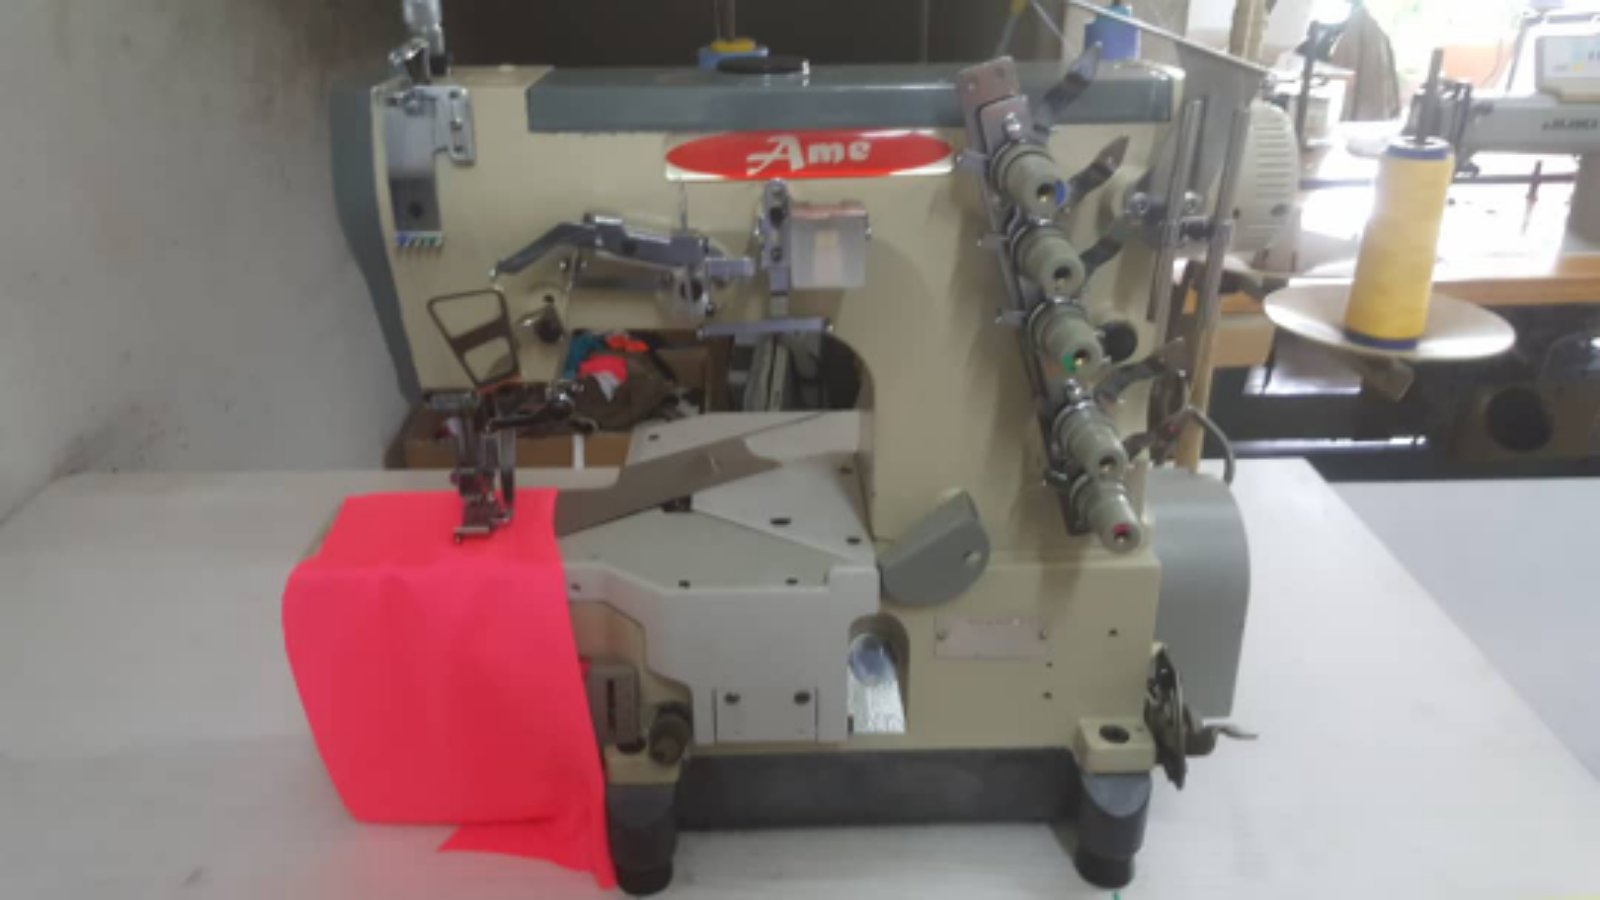 Second Hand Ame Industrial Interlock coverstitch Sewing Machine